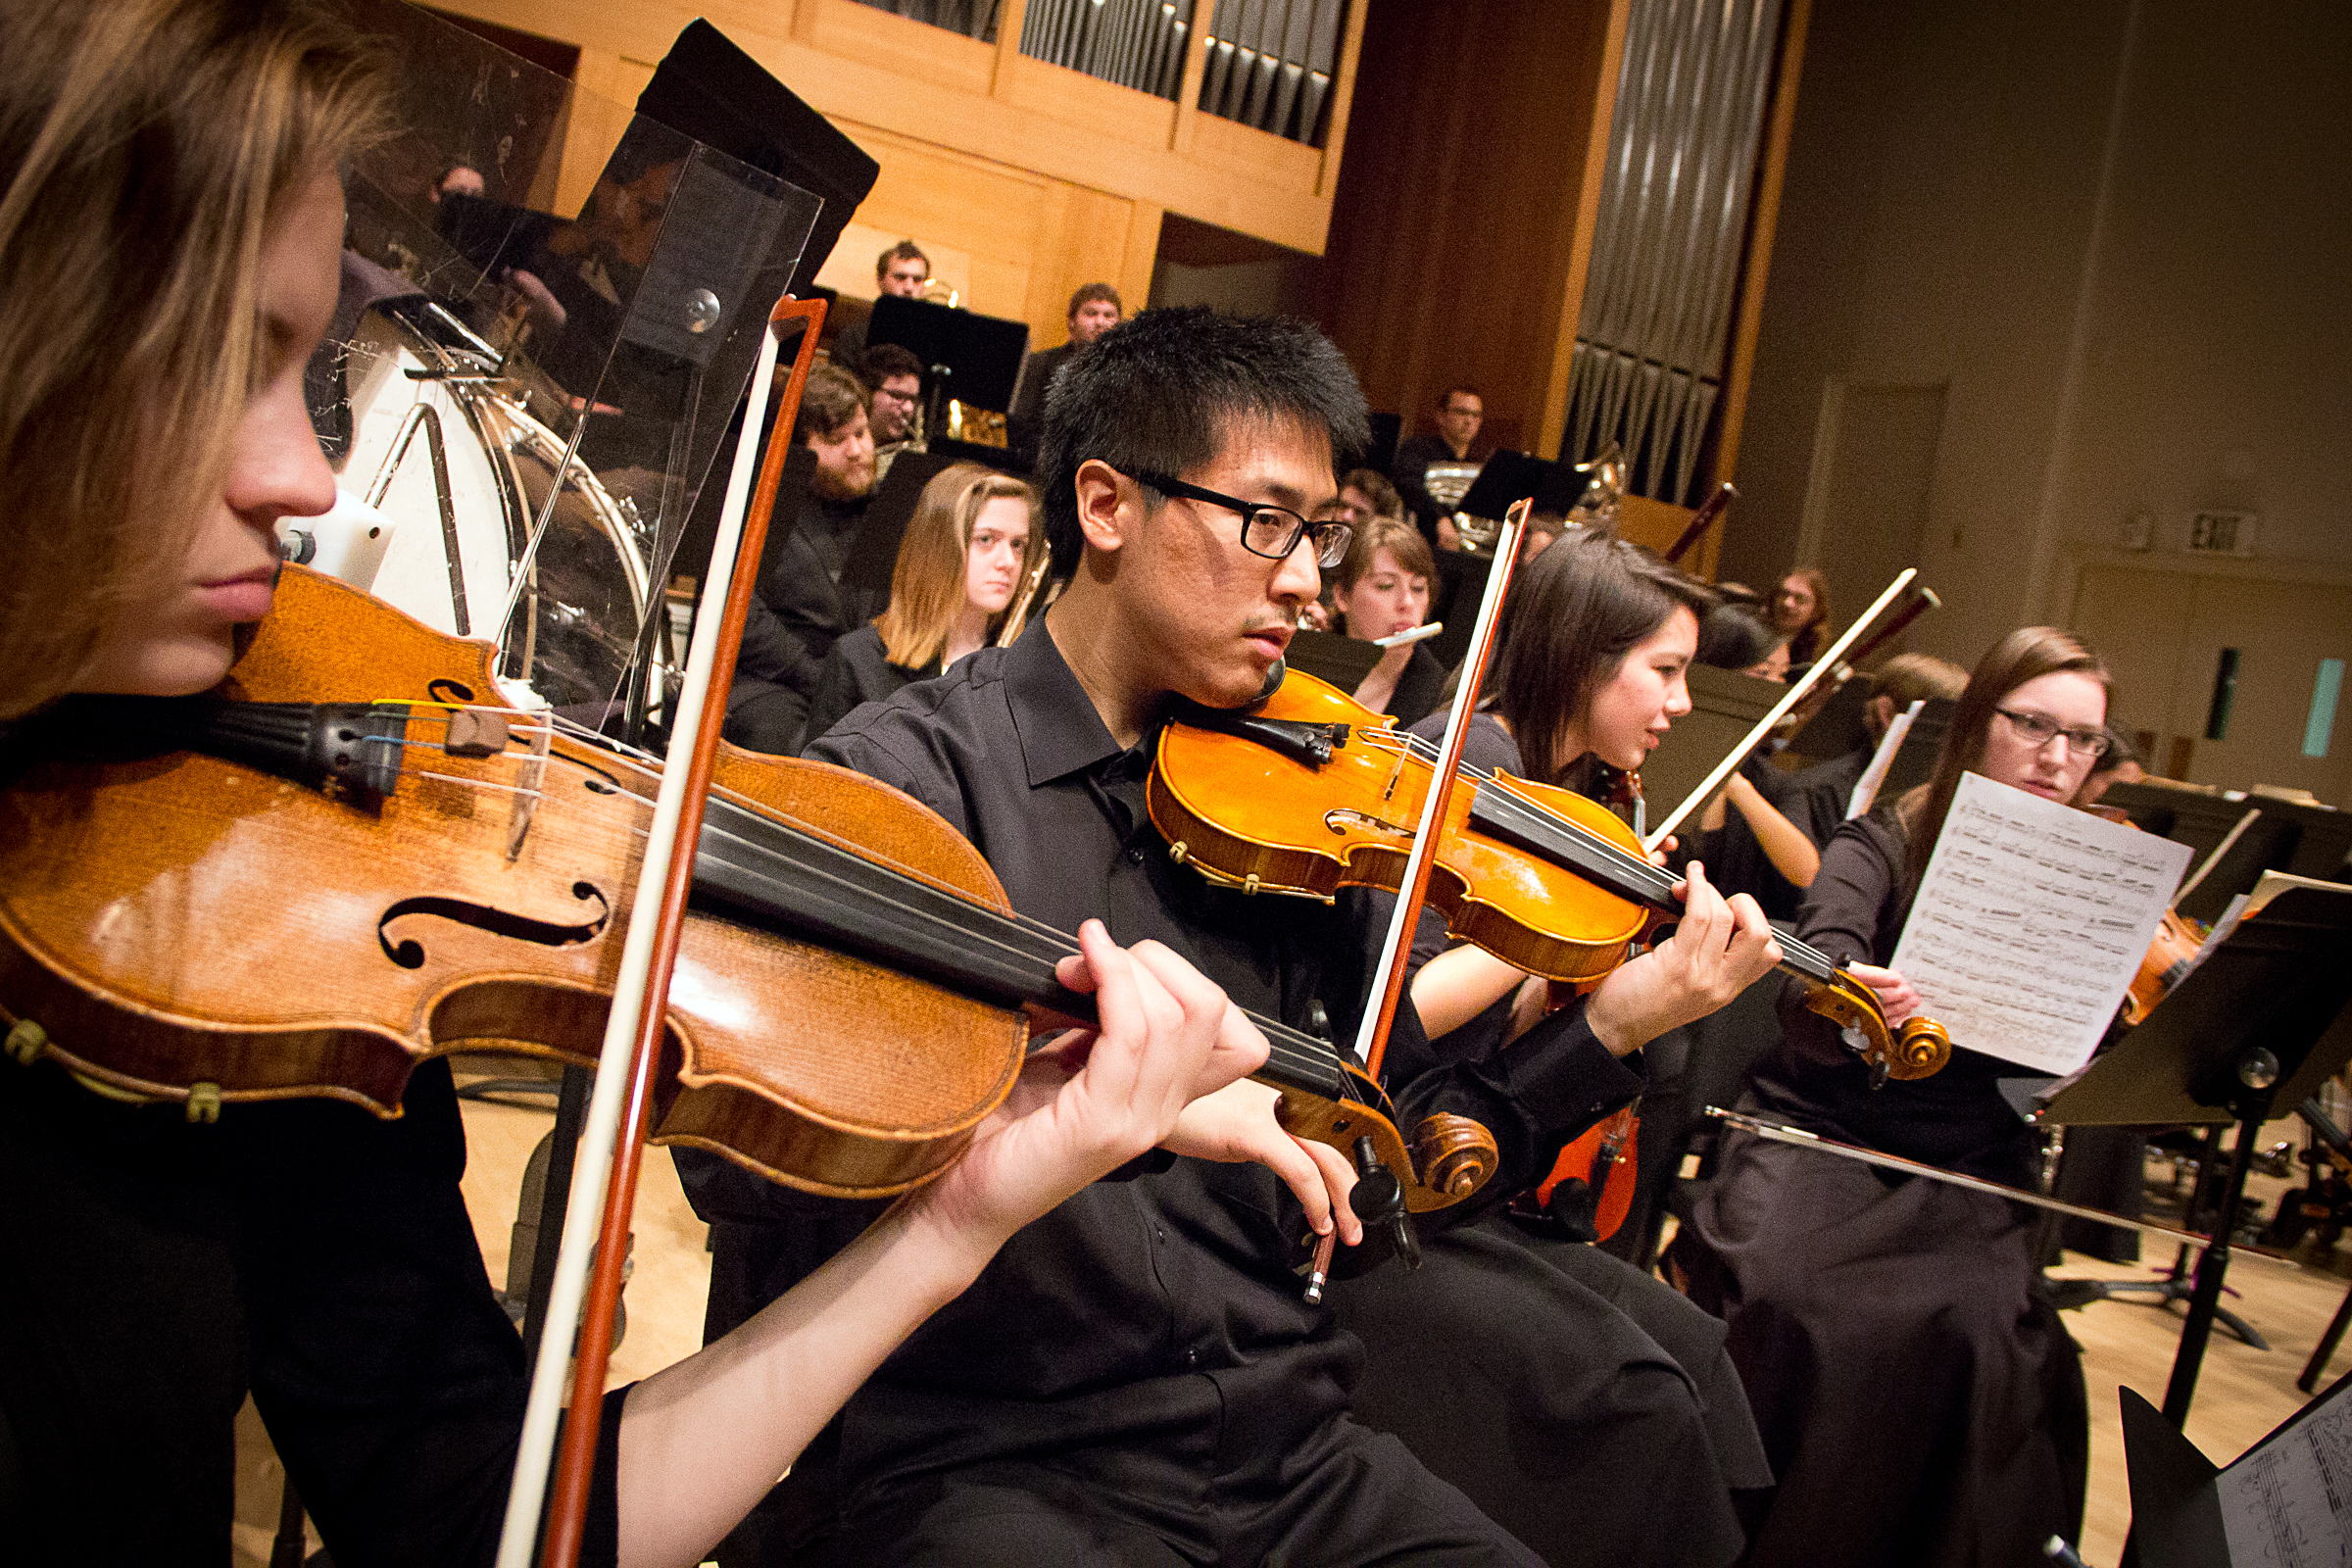 College - University of Oregon: School of Music and Dance  6